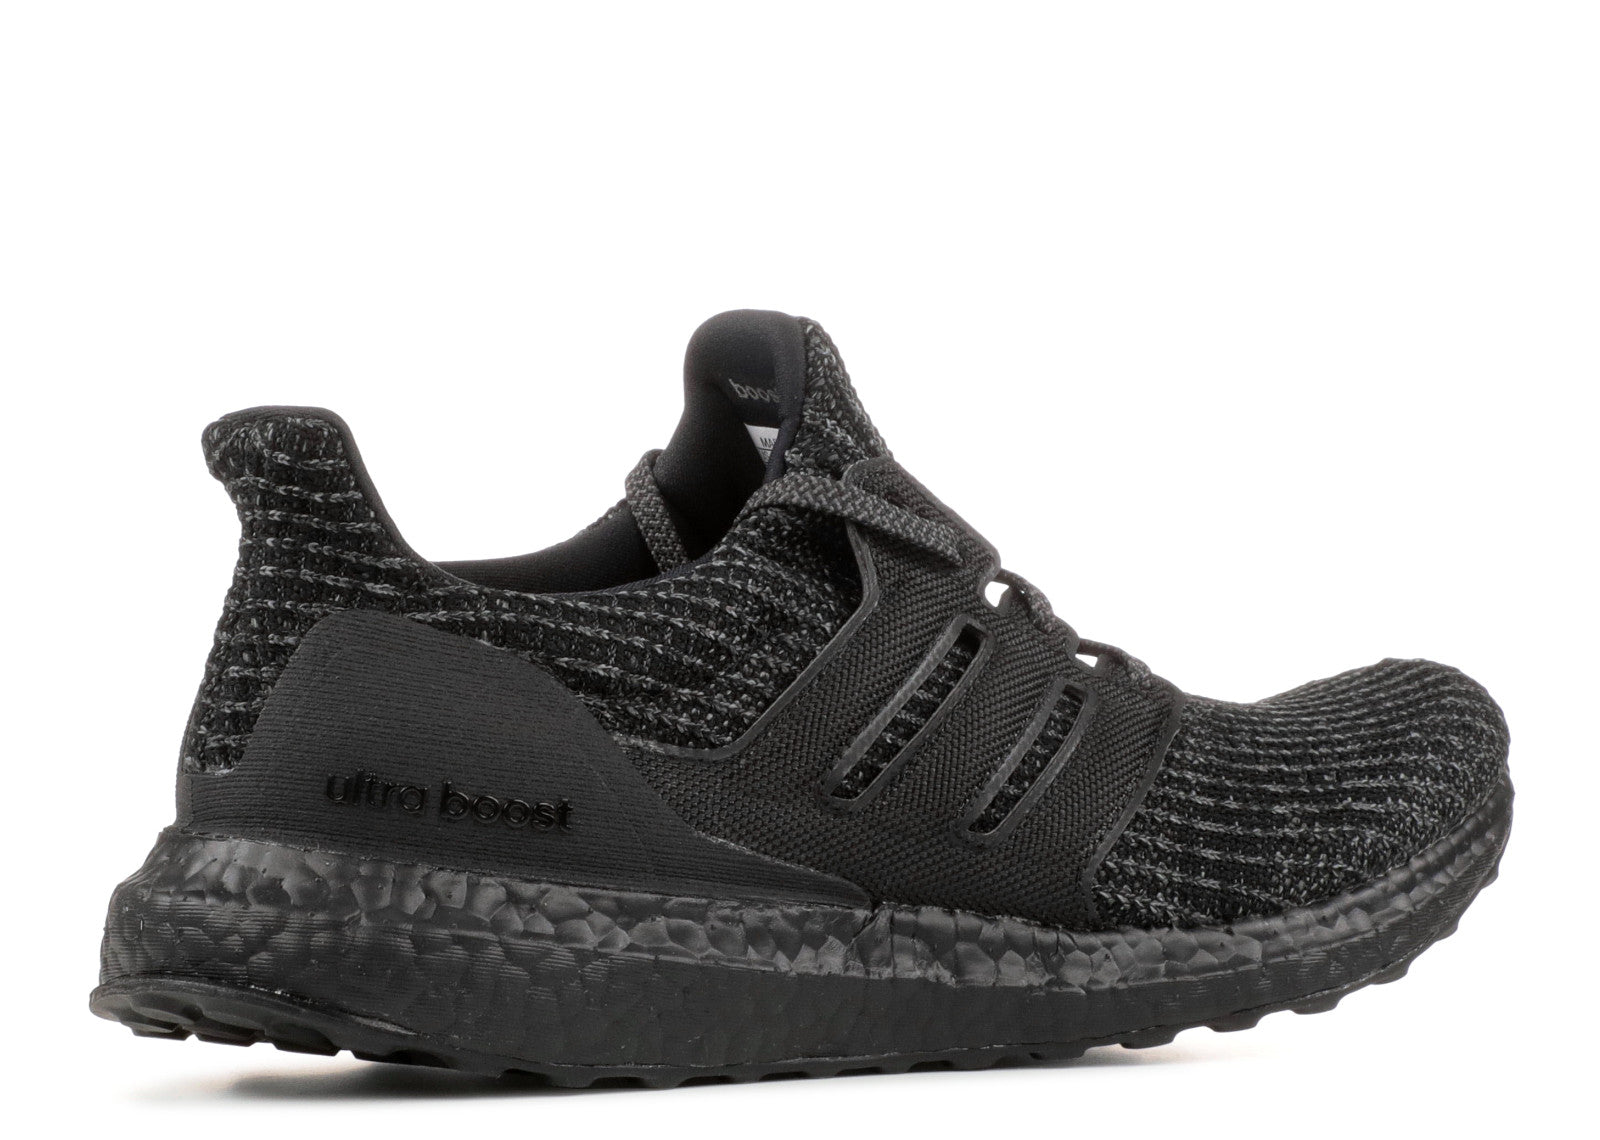 beb4ad183b7b8 Adidas UltraBoost 4.0 Triple Black – Authentic Sole Boutique